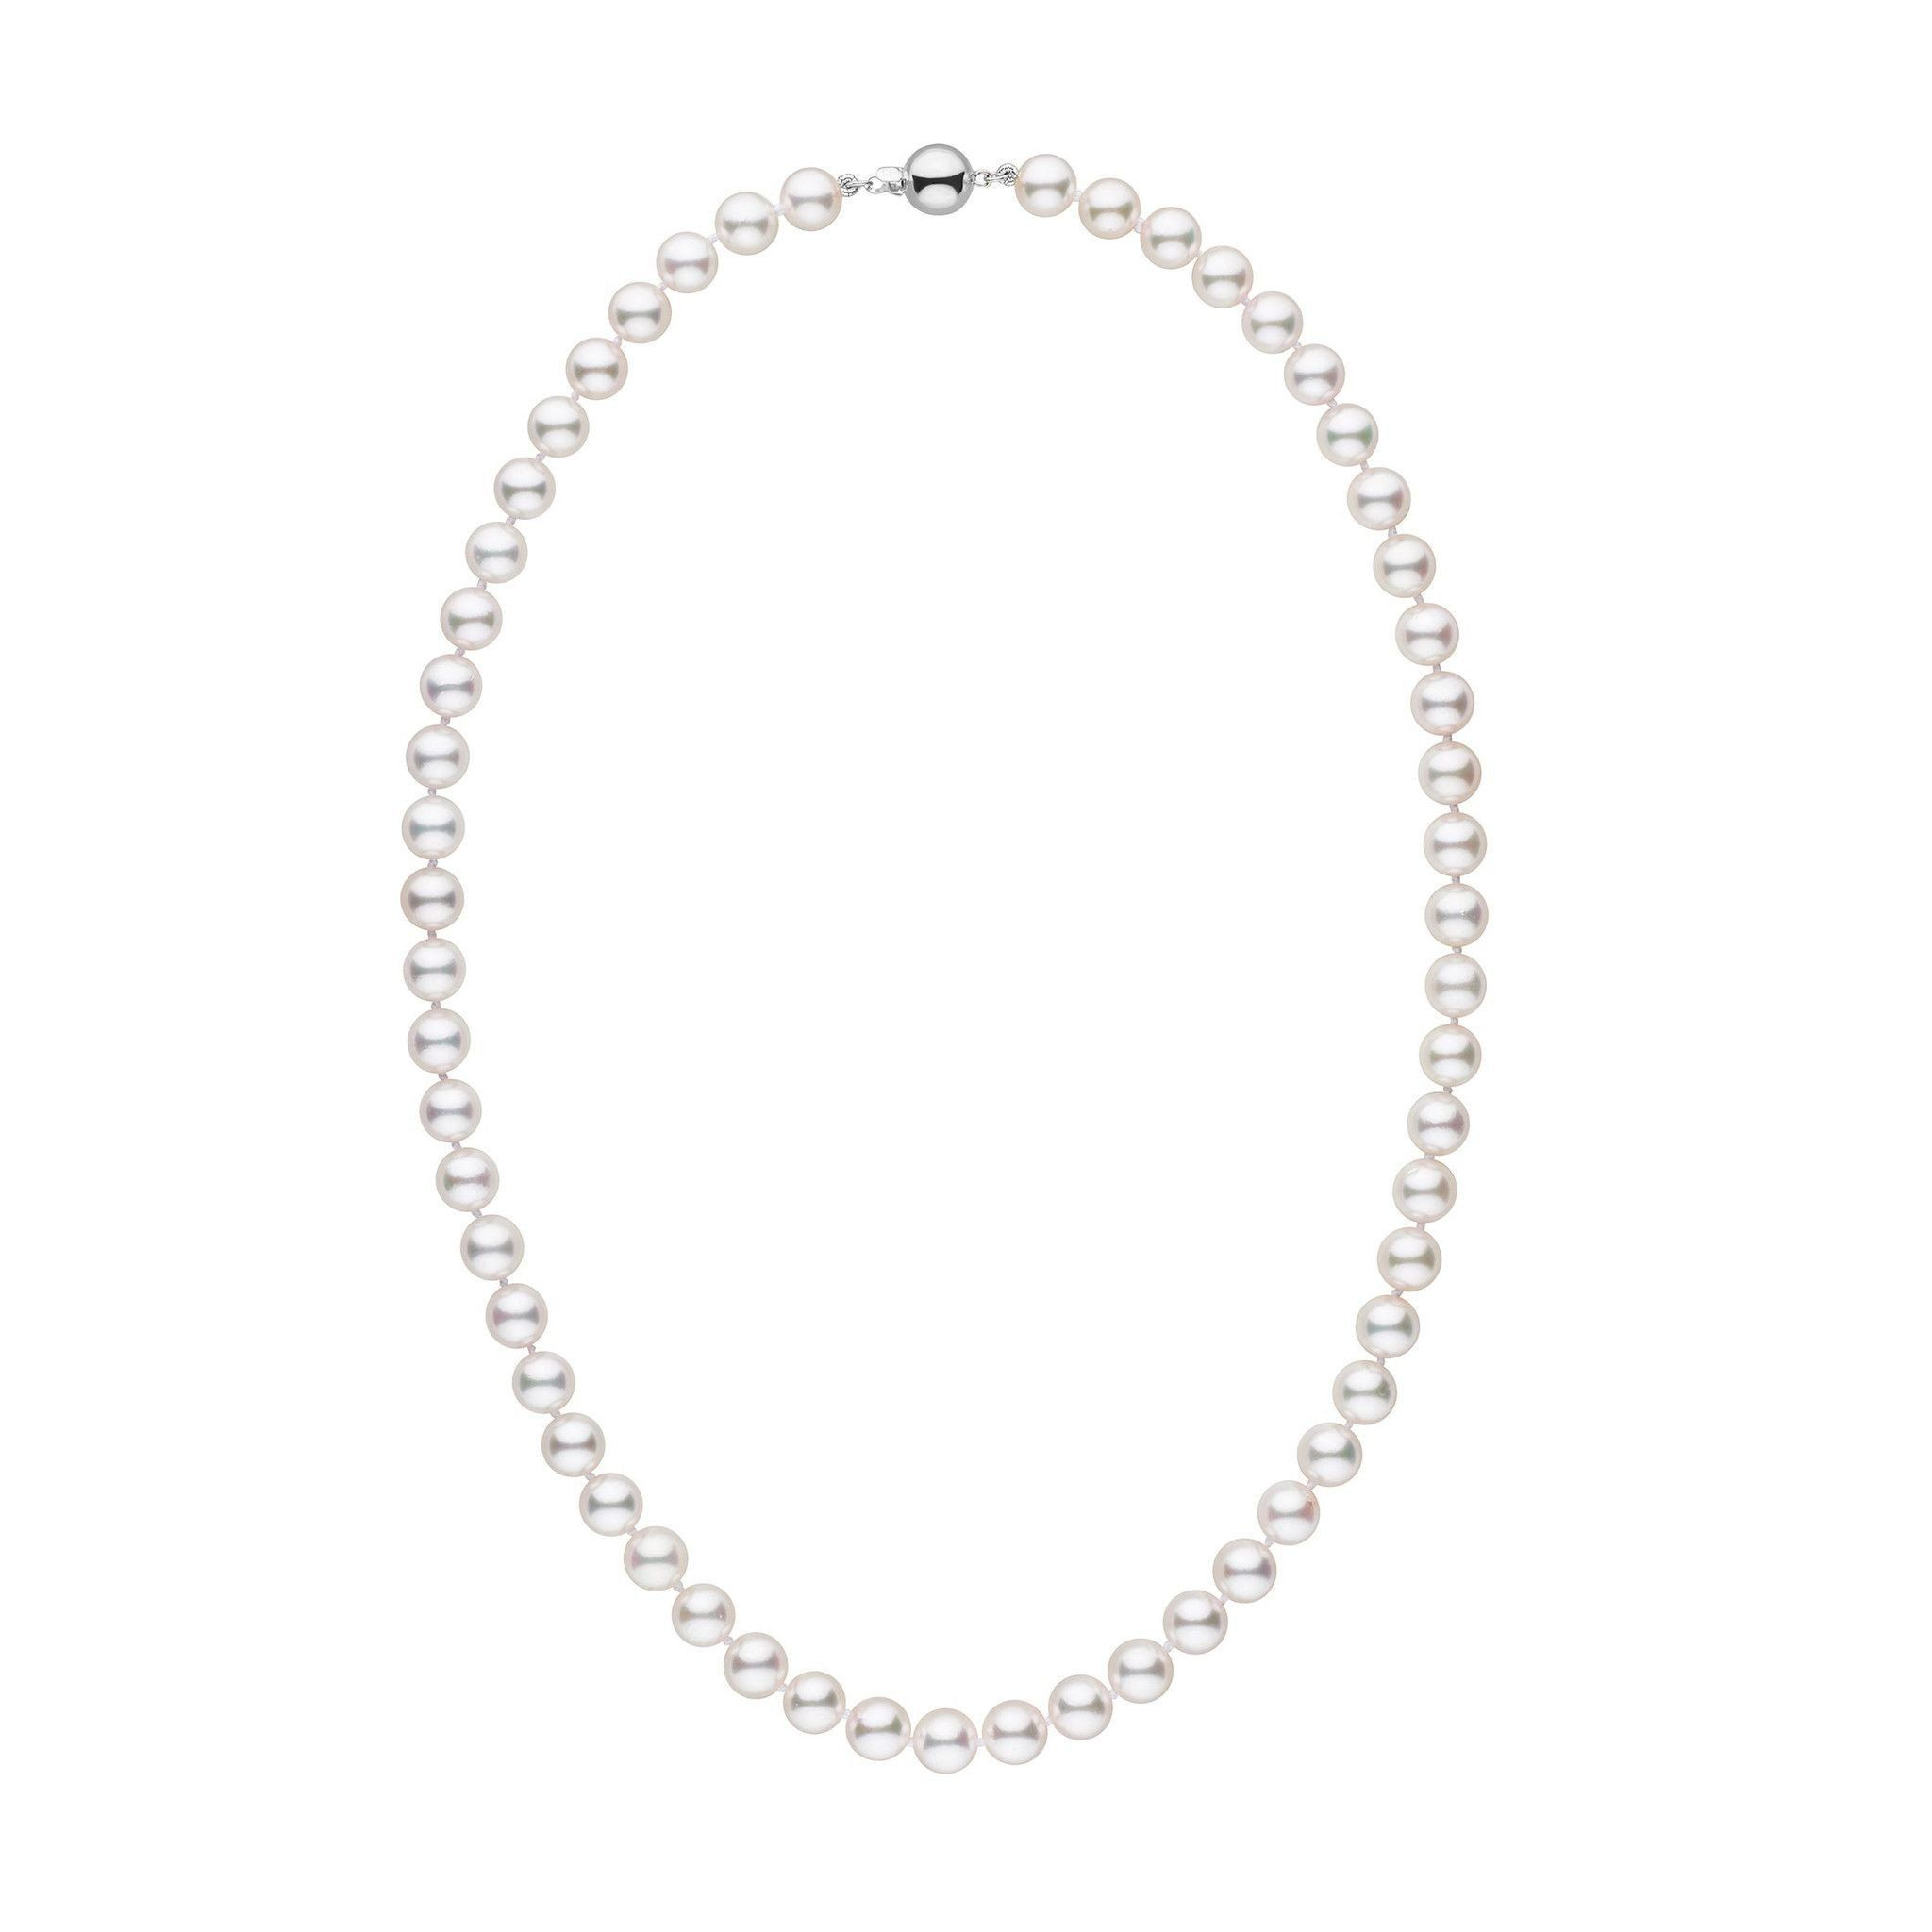 7.0-7.5 mm White Akoya 18 inch AAA Pearl Necklace